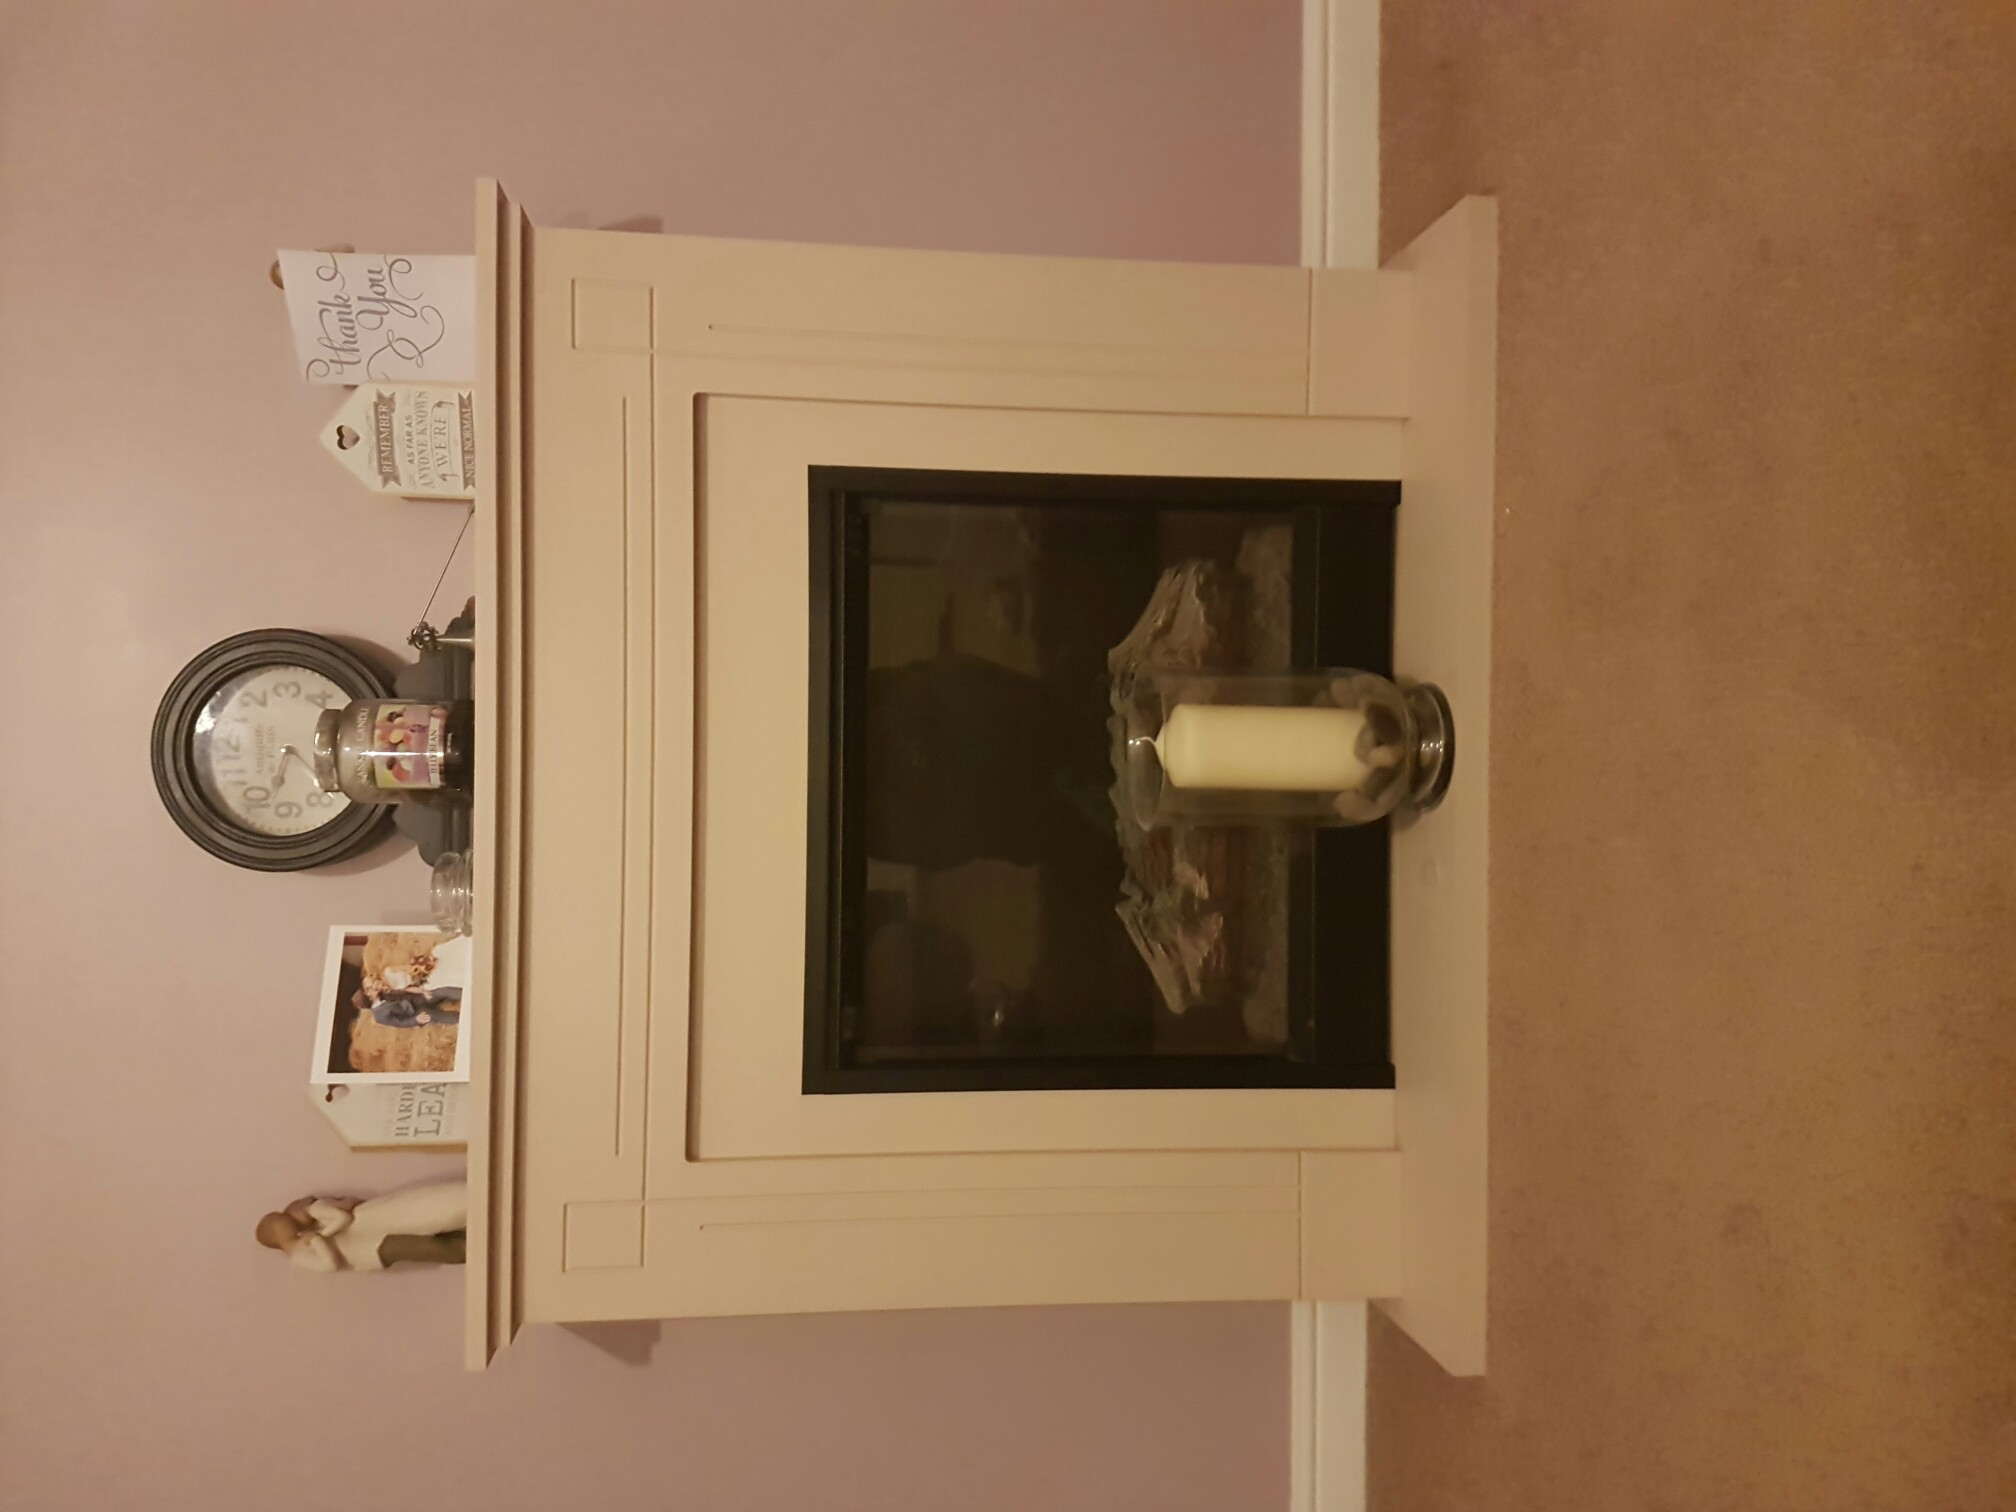 Fireplace With Electric Fire For Sale In Uk View 100 Ads